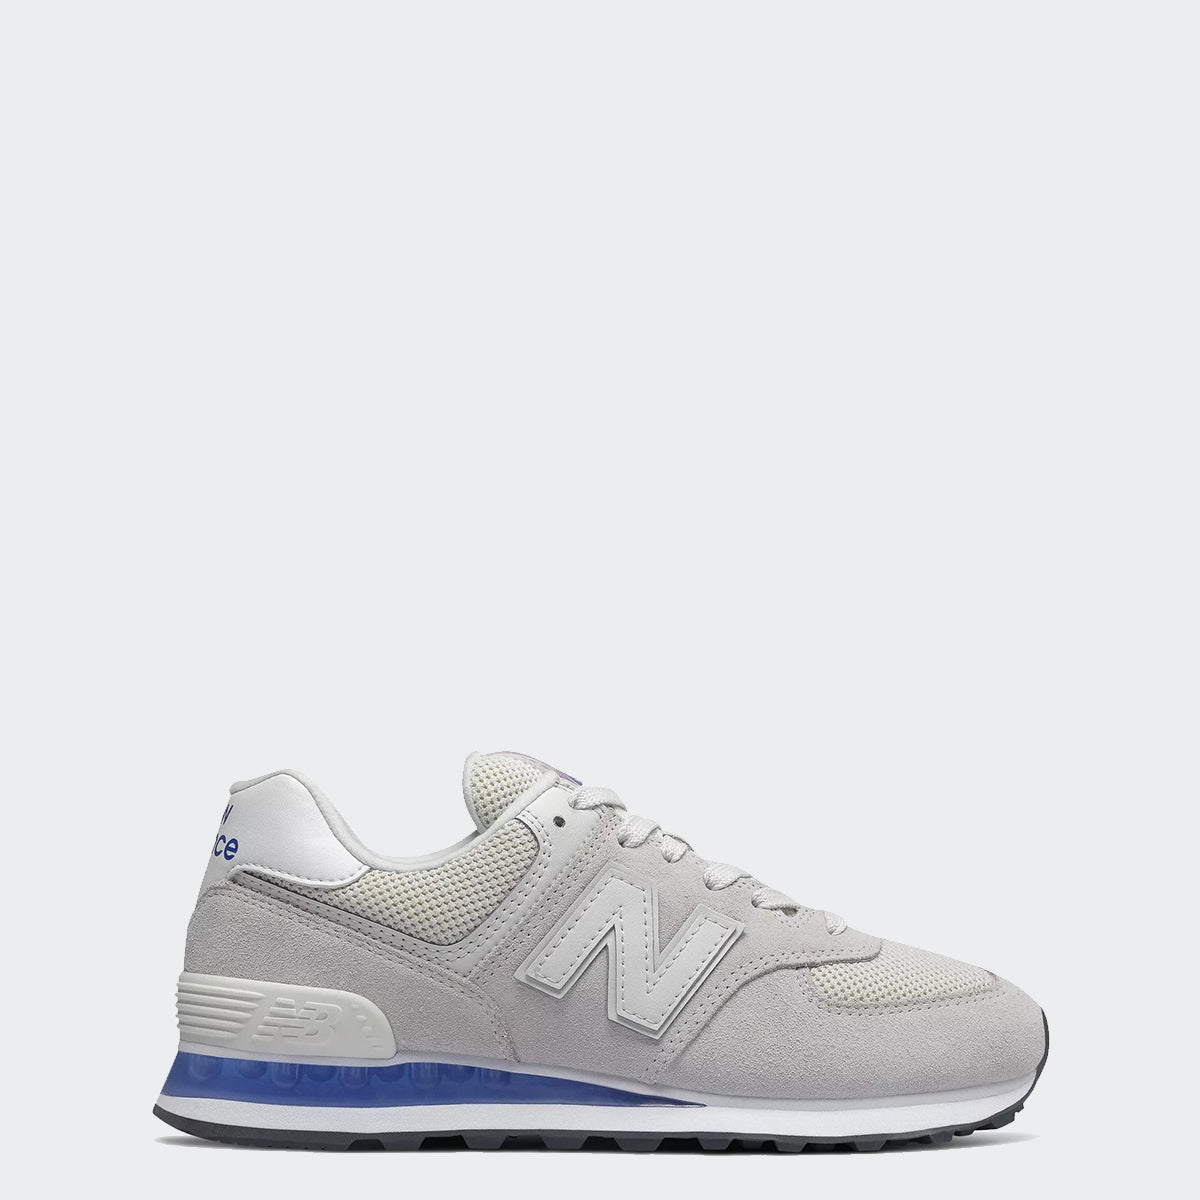 online store 73f71 57efd Women's New Balance 574 Shoes White UV Blue - 5 / WHITE